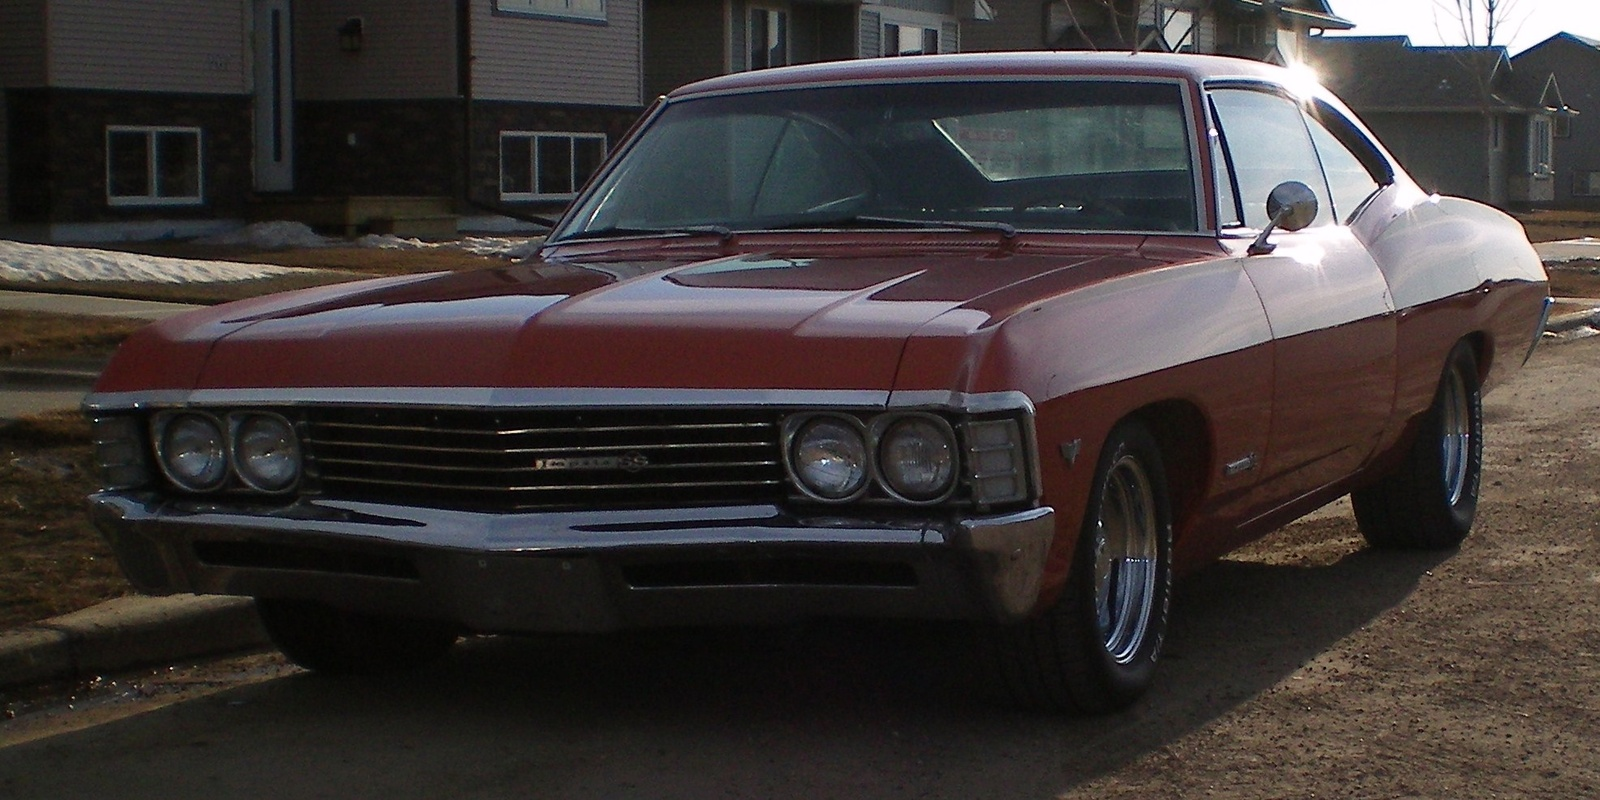 1967 Chevrolet Impala Pictures C4317 pi35682787 together with Chevrolet Malibu 2000 together with 2007 Chevrolet Impala Pictures C3743 pi36309837 as well Electric power steering system 1735 as well Aftermarket Car Stereo Wire Colors. on 2003 chevy malibu cars